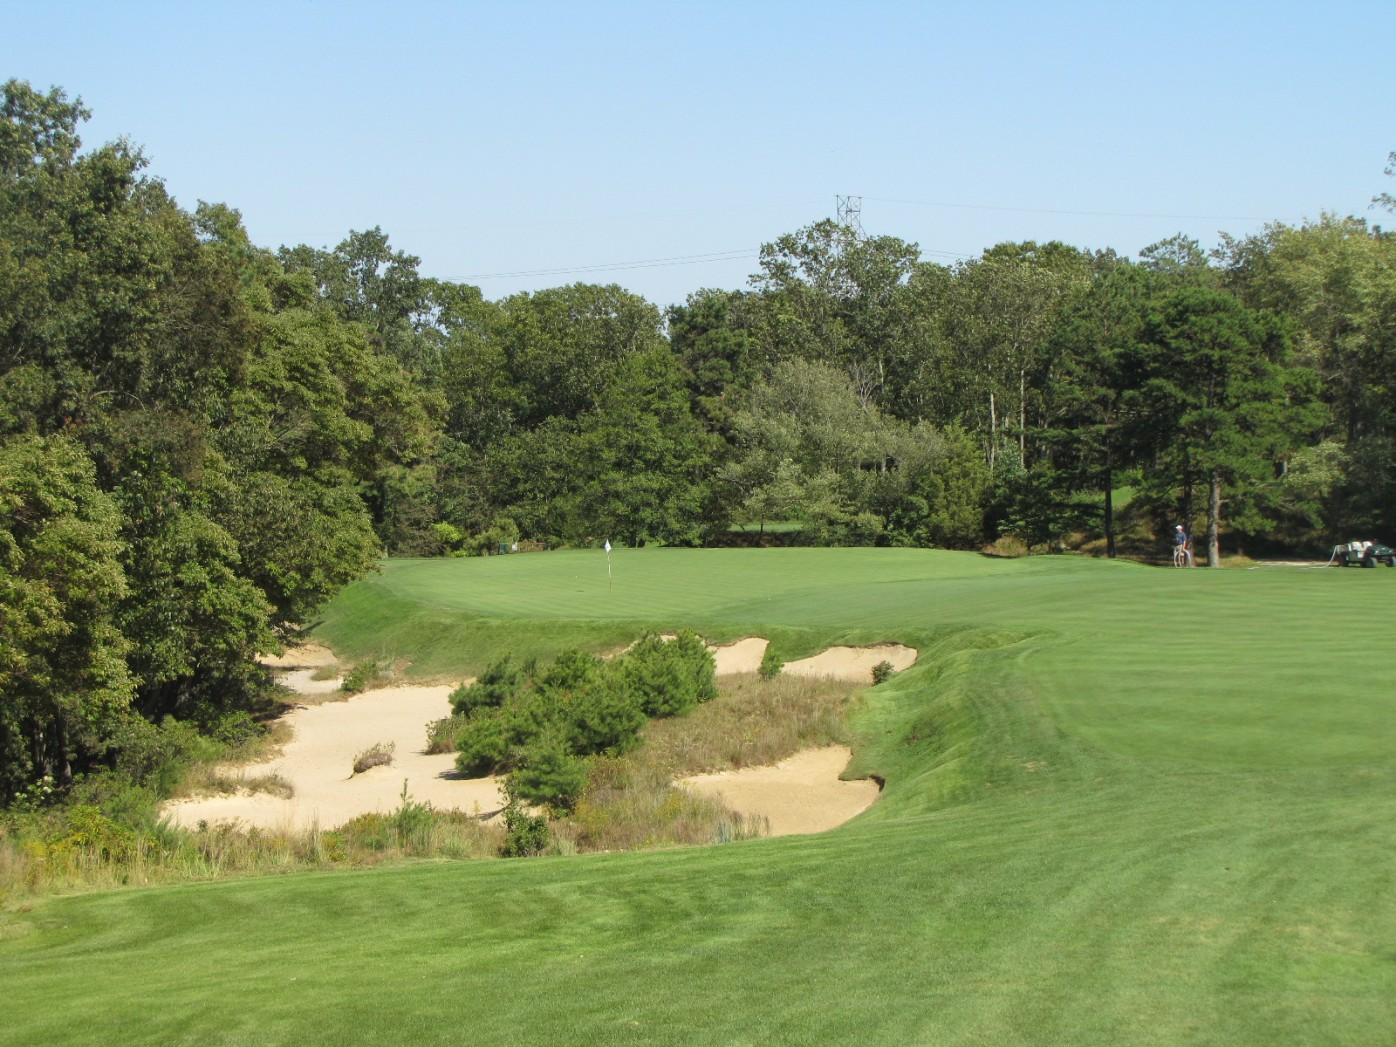 PINE VALLEY - DAY ONE OF THE 2010 CRUMP CUP - Randy Haag's ...